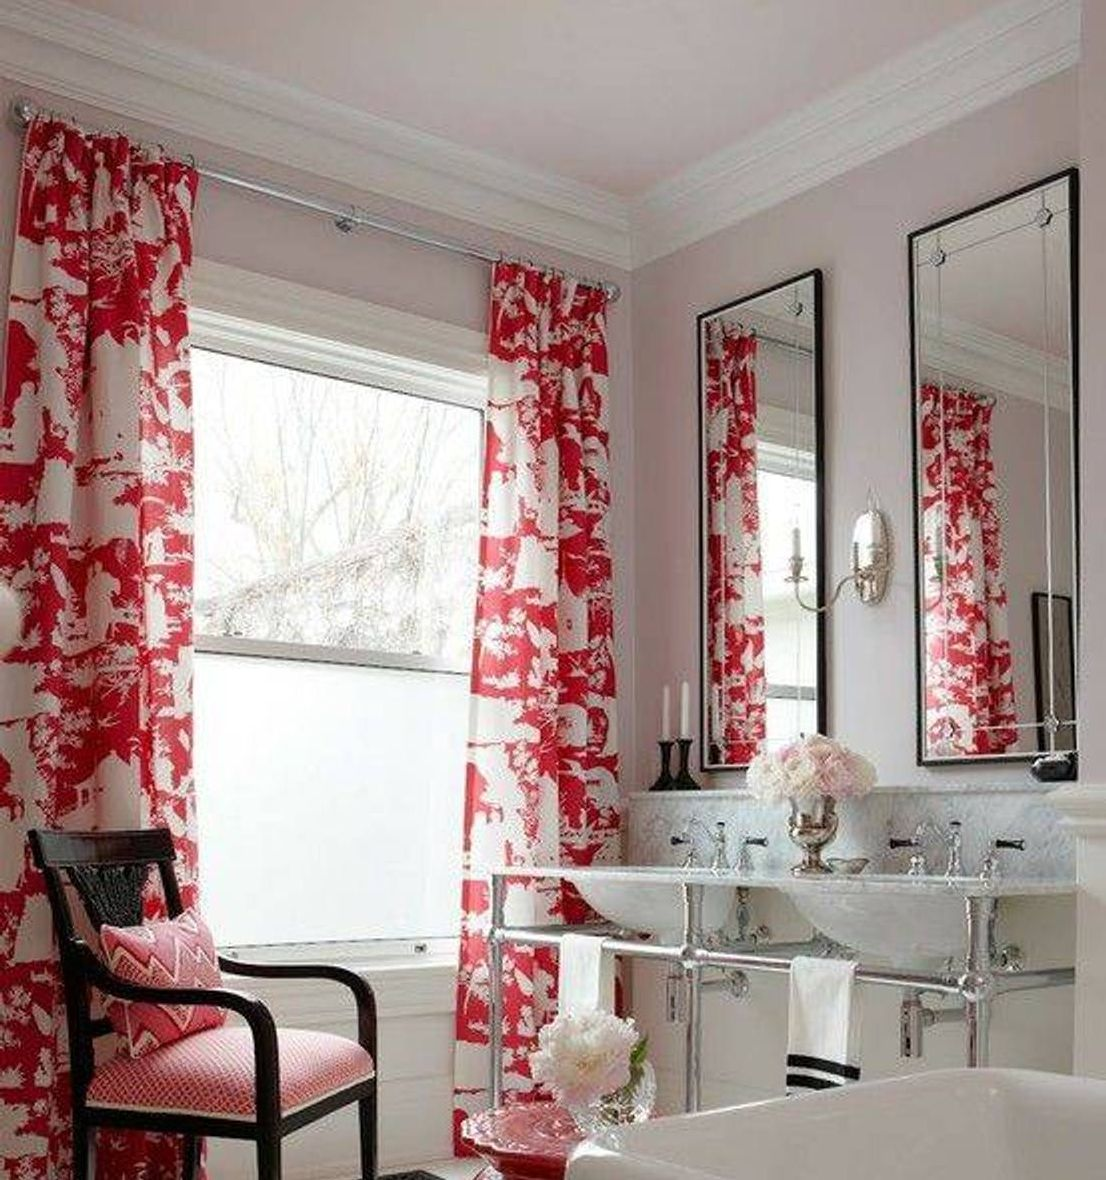 Luxury bathroom curtains - Bathroom Curtains Throughout Modern Bathroom Curtains Ideas For